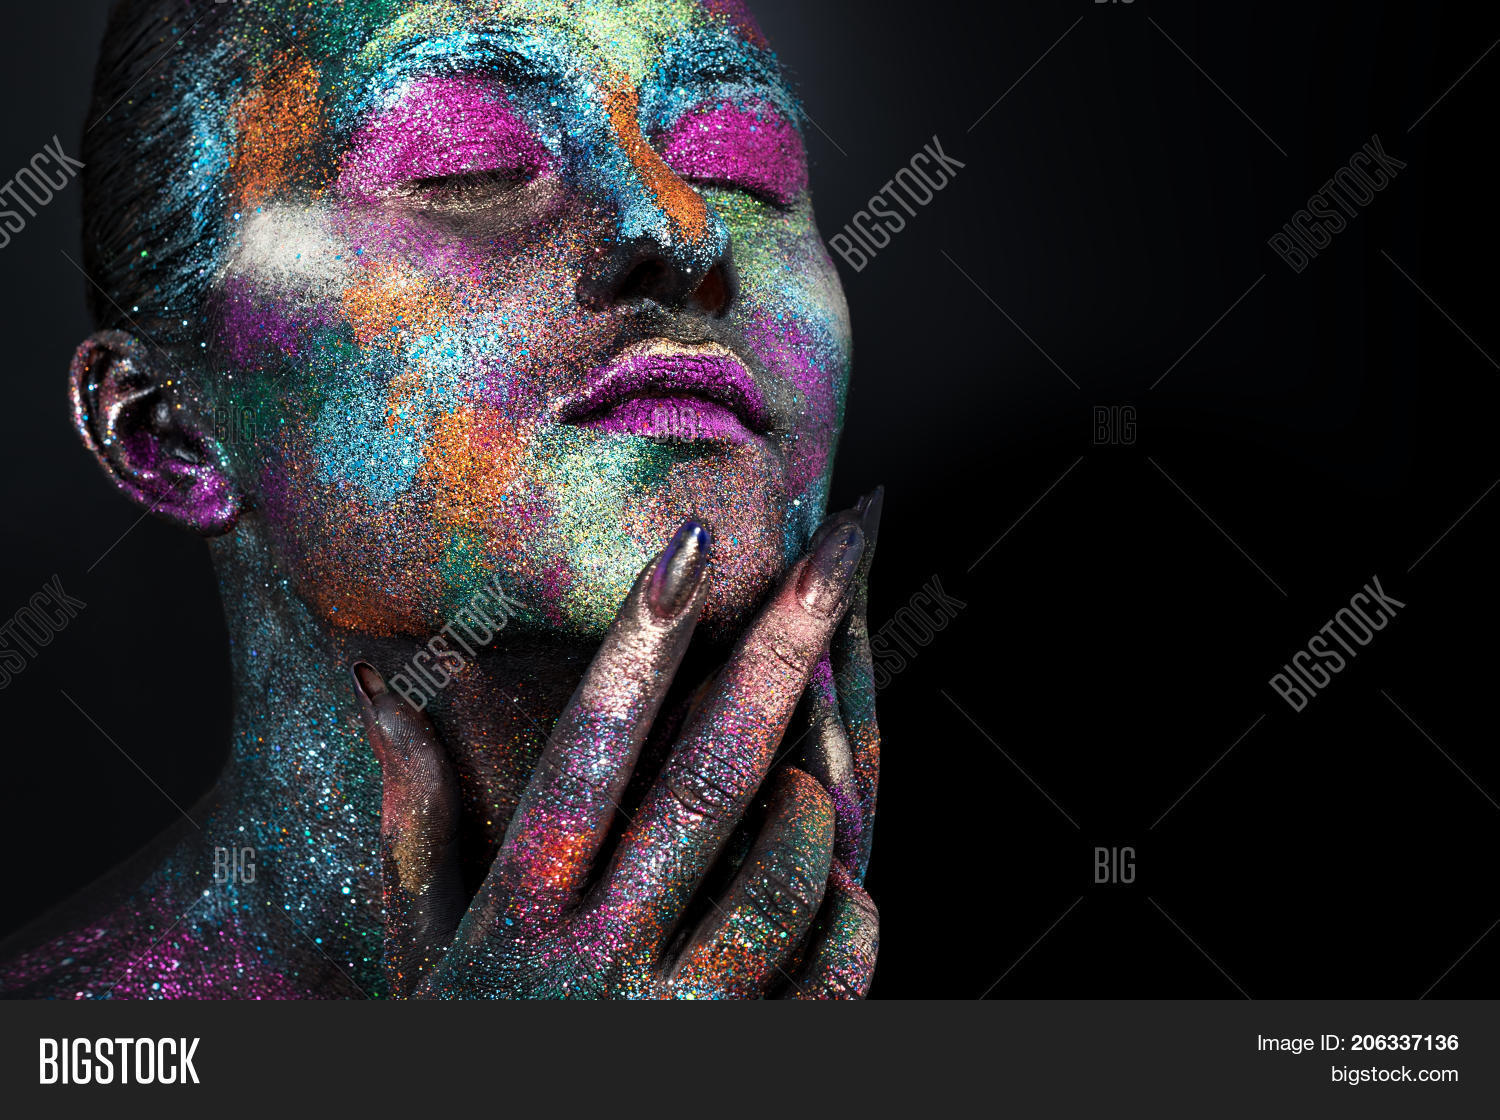 Young Artistic Woman Image Photo Free Trial Bigstock